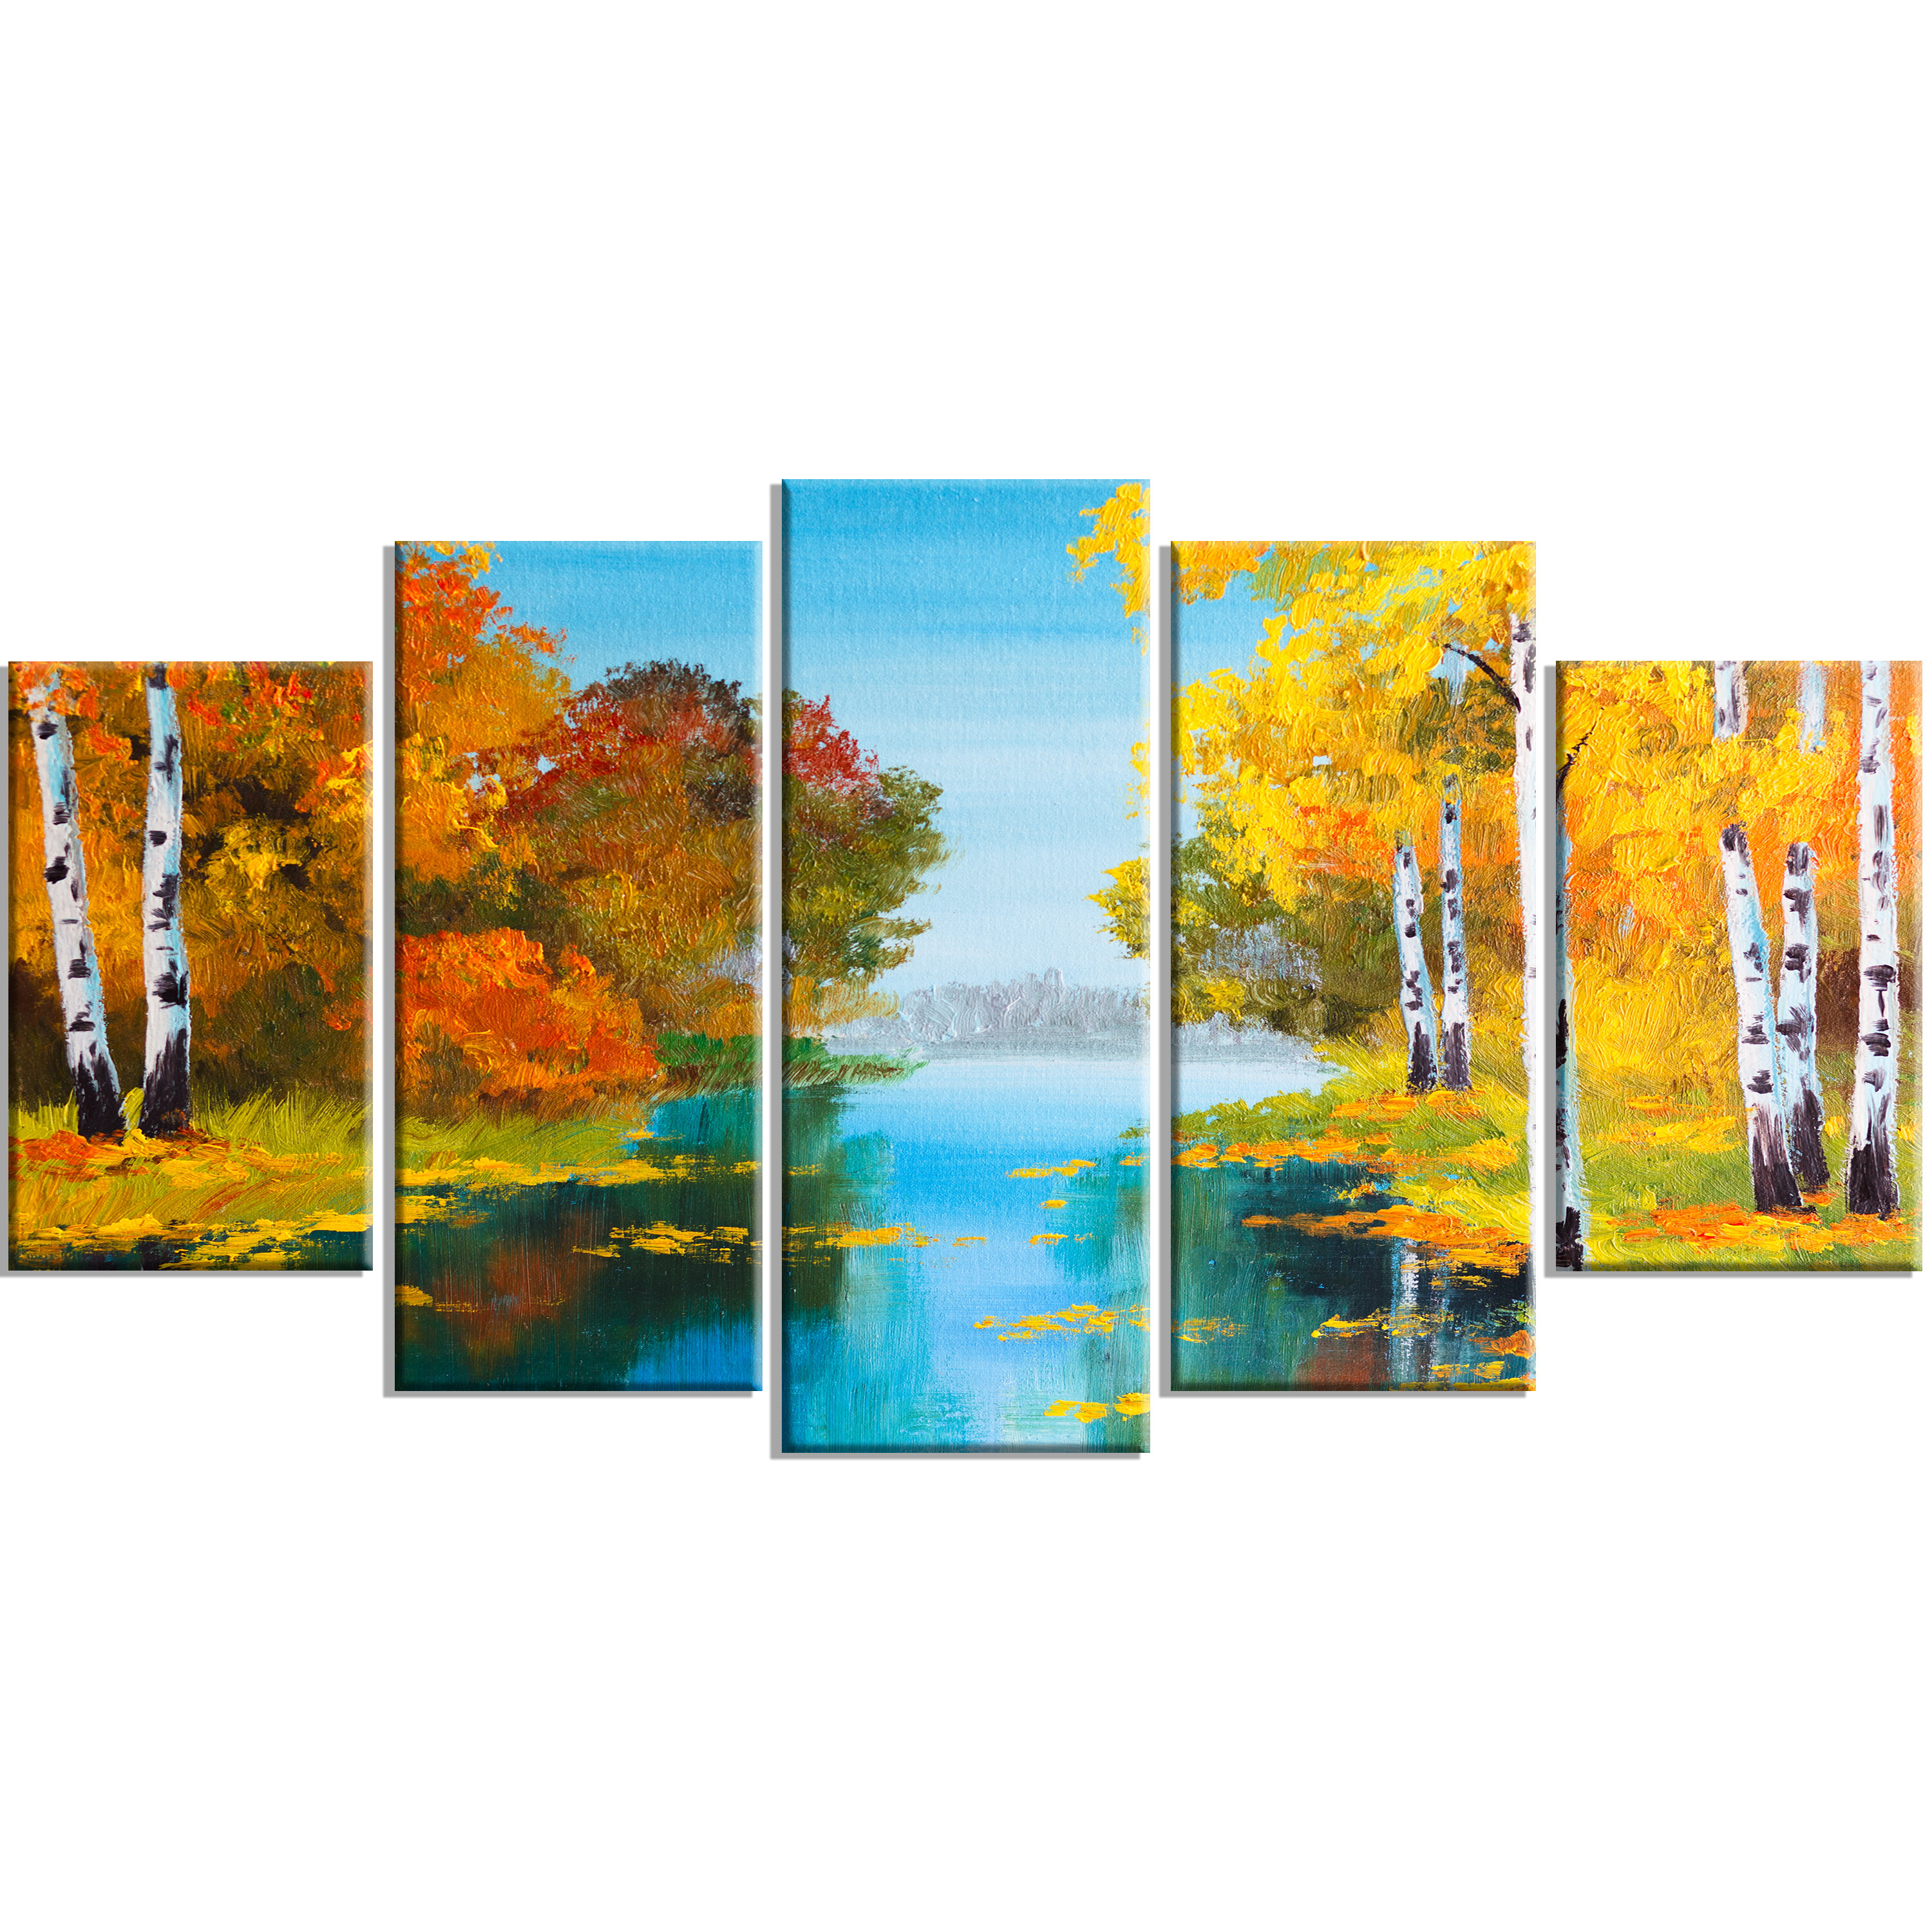 Designart Birch Forest Near The River 5 Piece Painting Print On Wrapped Canvas Set Wayfair